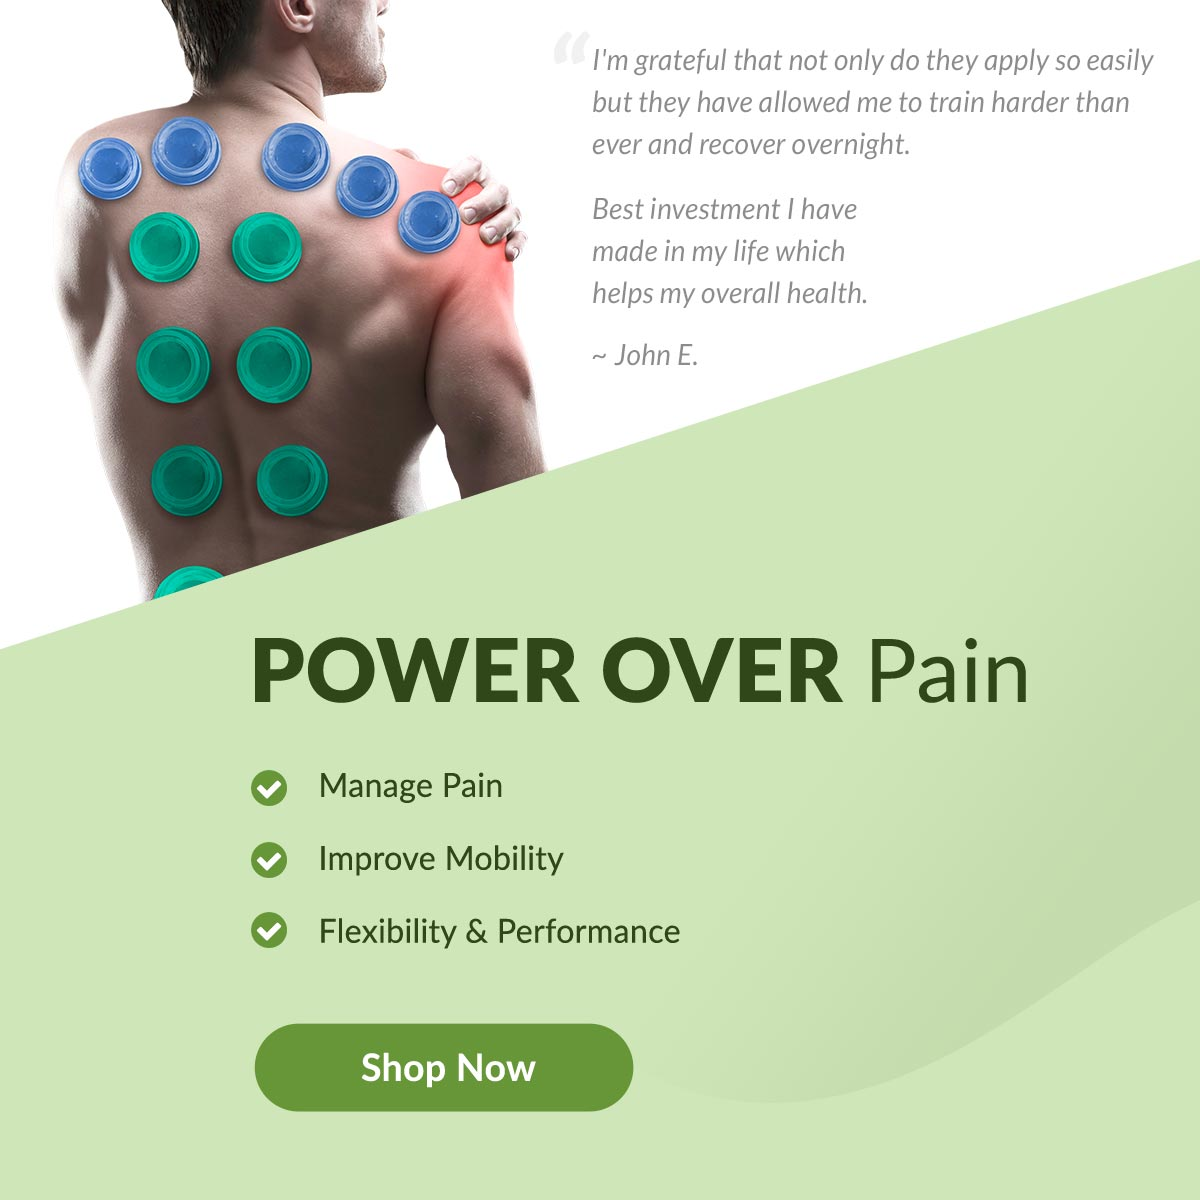 Man doing cupping therapy - Power Over Pain